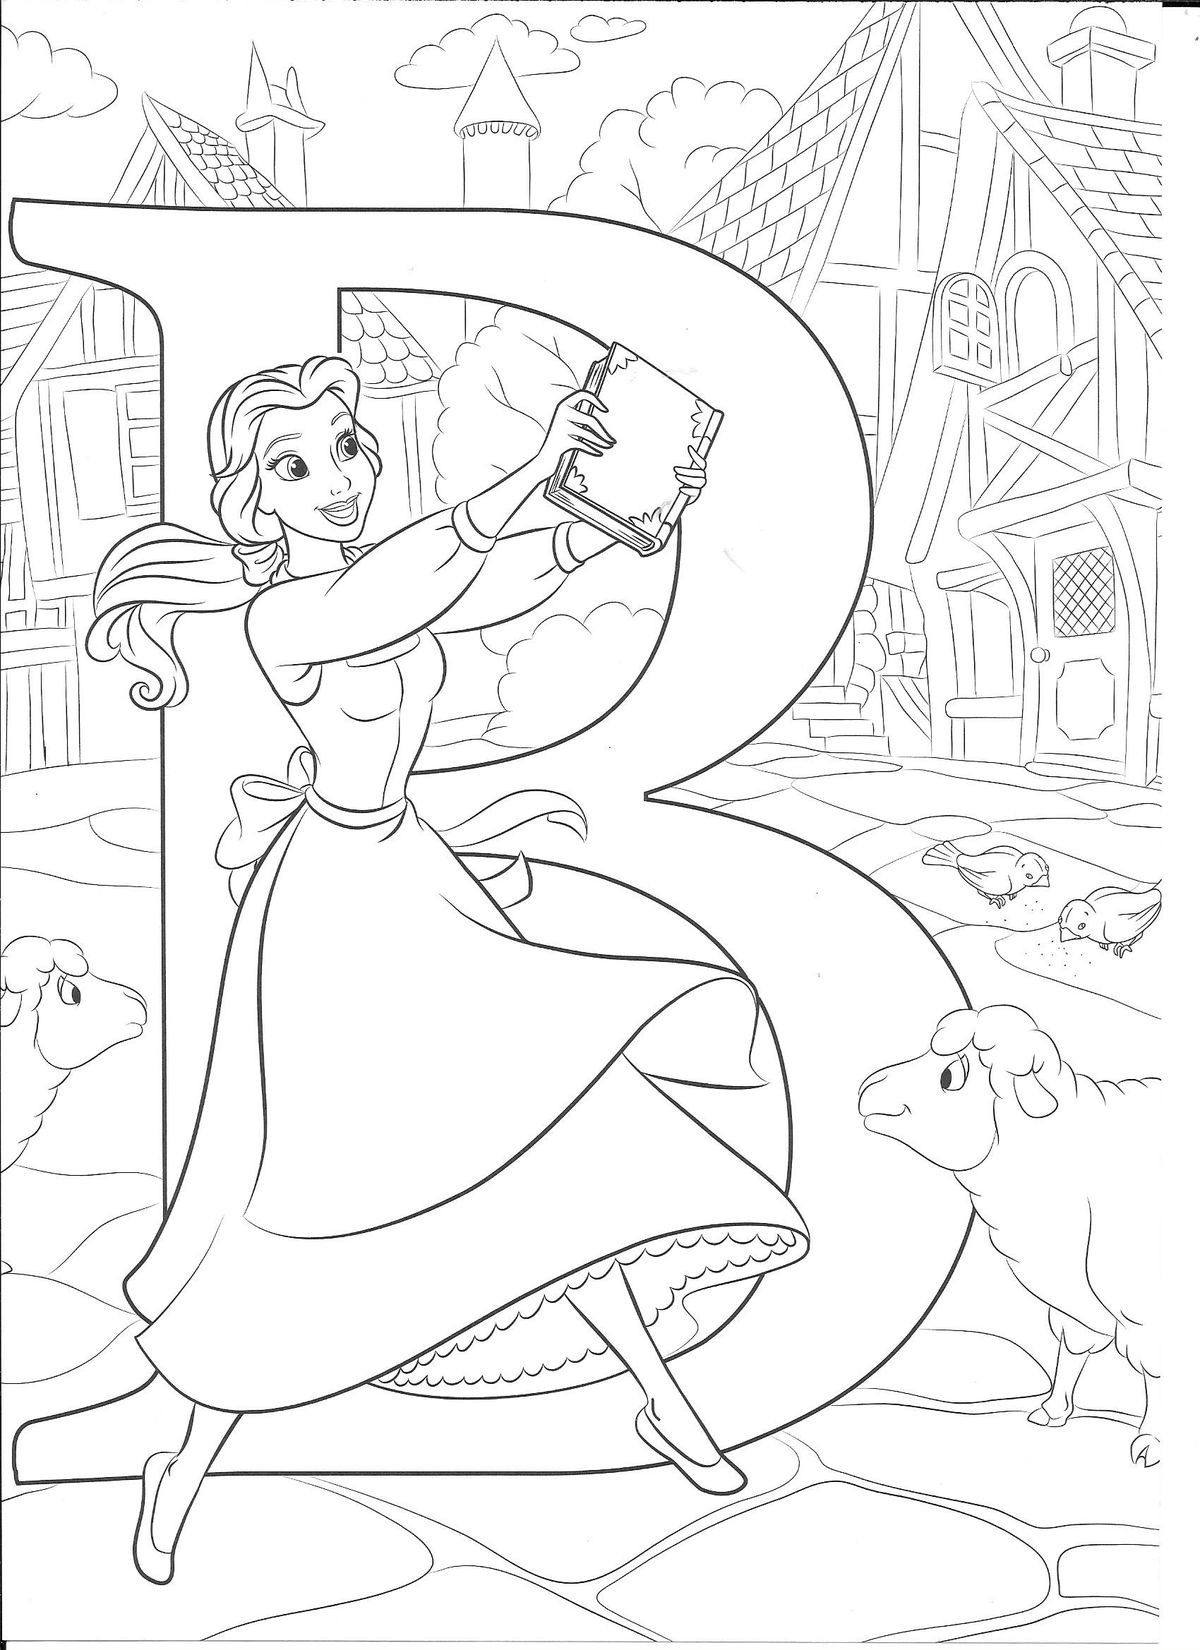 Alphabet Coloring Sheets Image By Mini